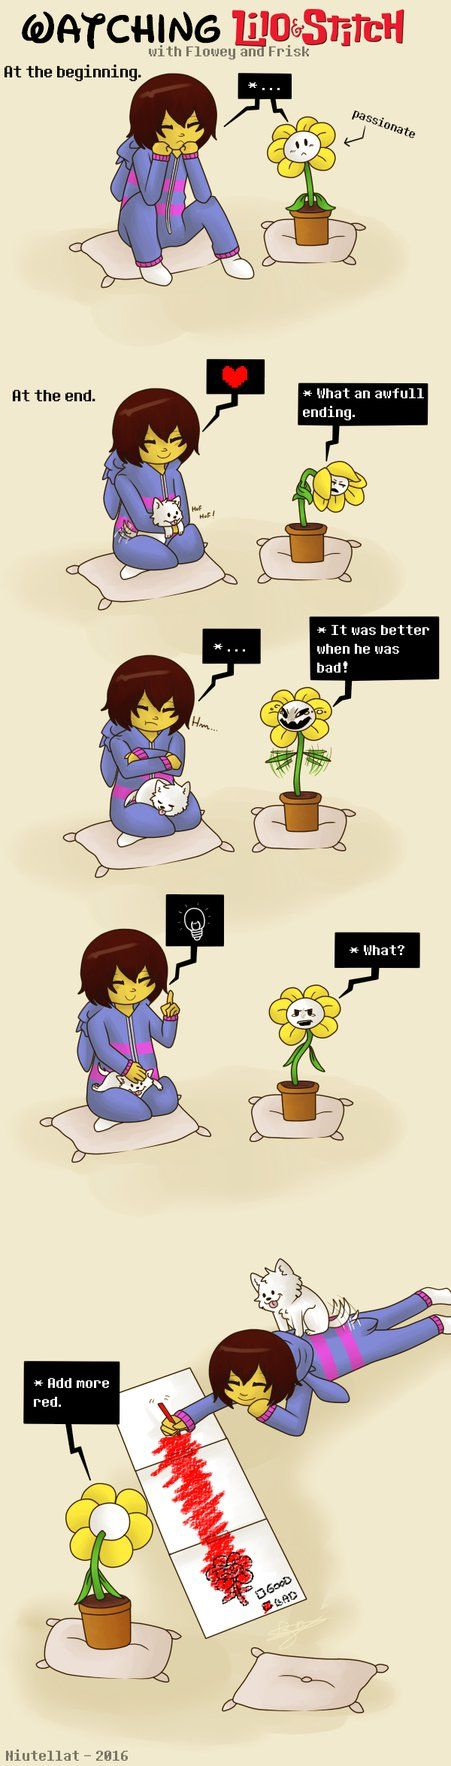 Undertale Comic - Lilo and Stitch by Niutellat